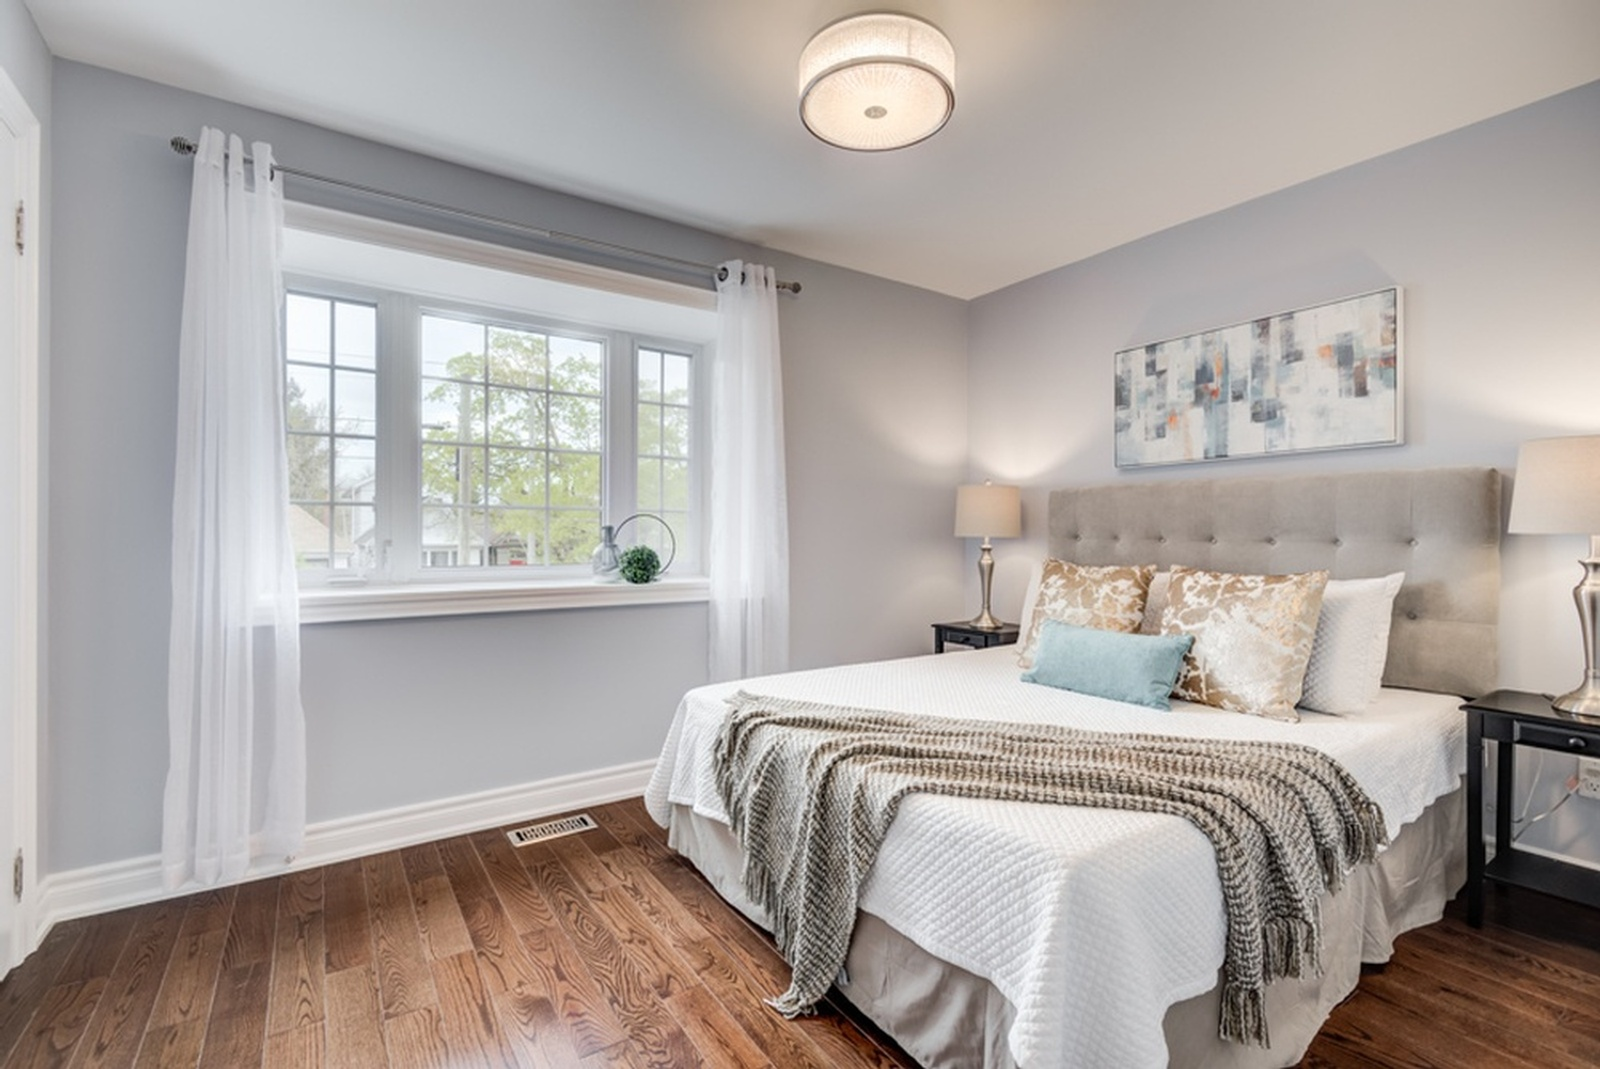 Bedroom Staging by Home Stager East York at Impressive Staging